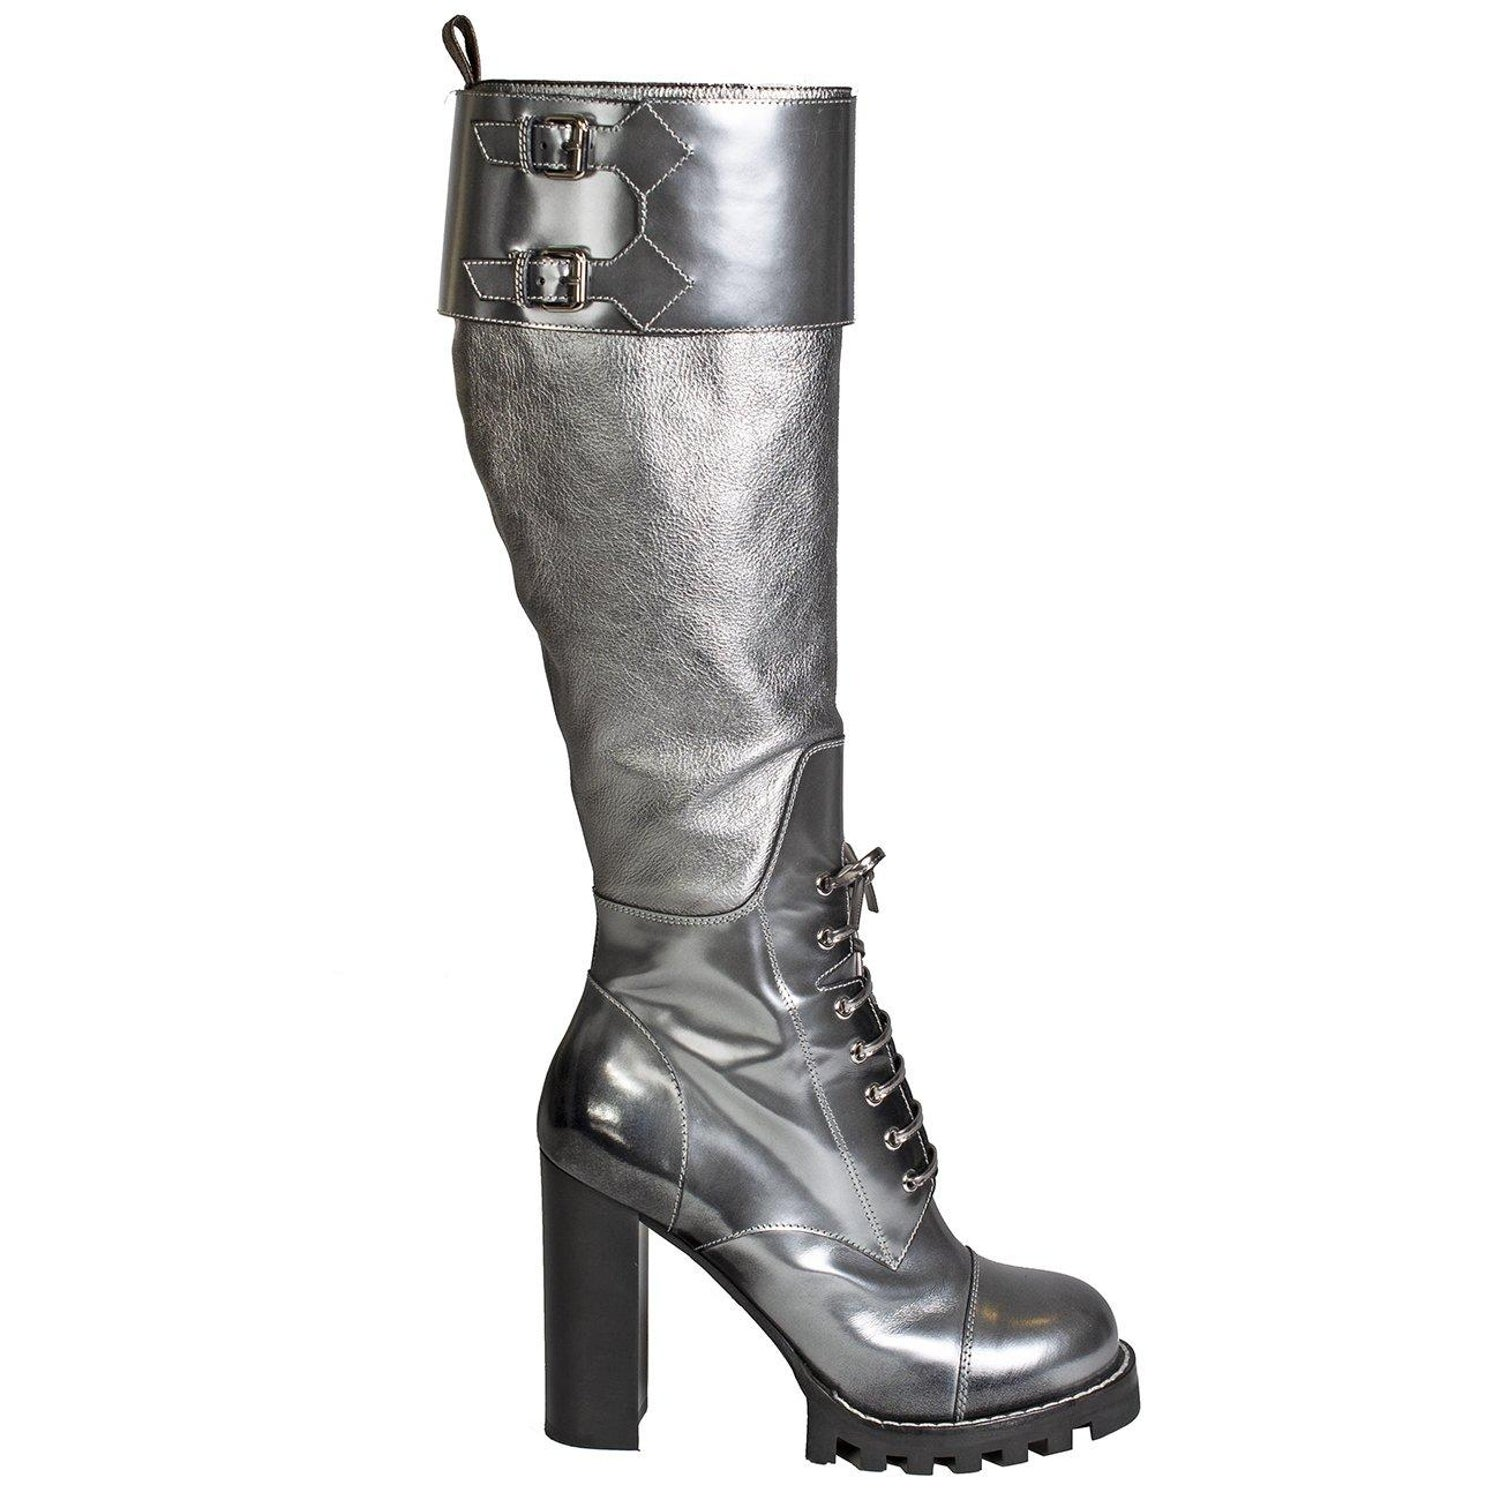 650aafc4ec0a Louis Vuitton Metallic Silver Leather Combat Boots at 1stdibs